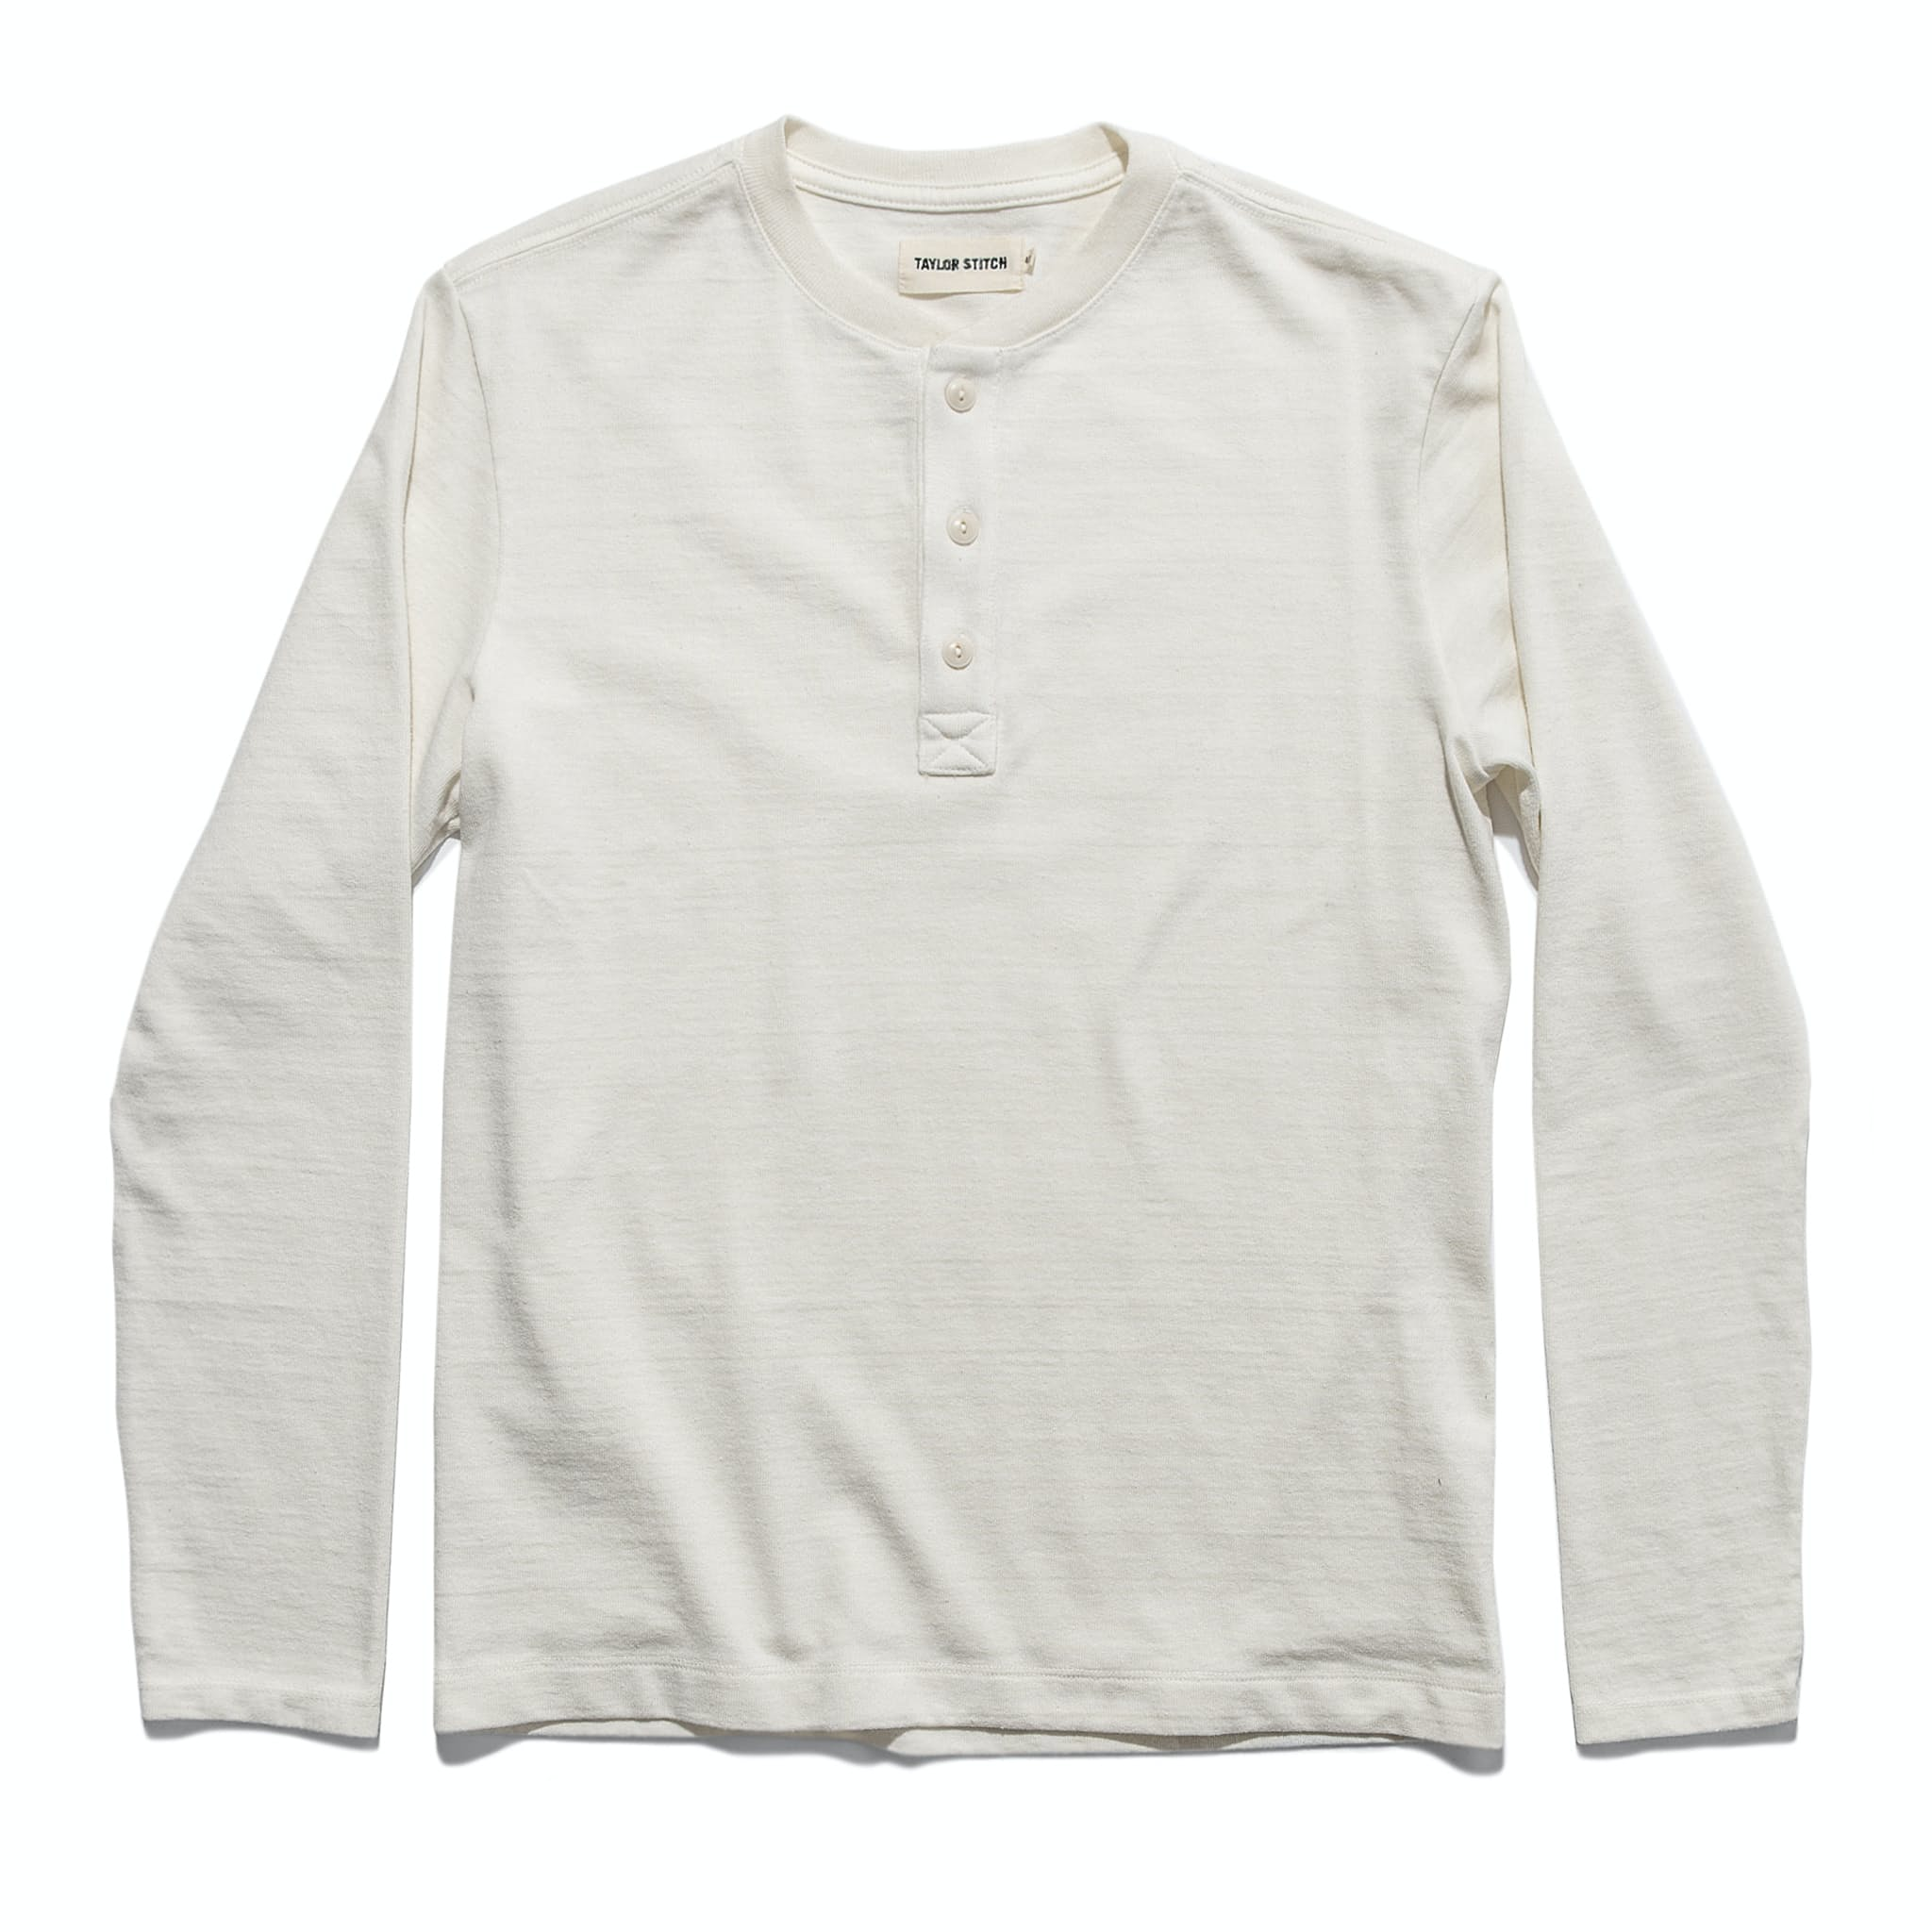 Dyx5vxikbx taylor stitch the heavy bag henley 0 original